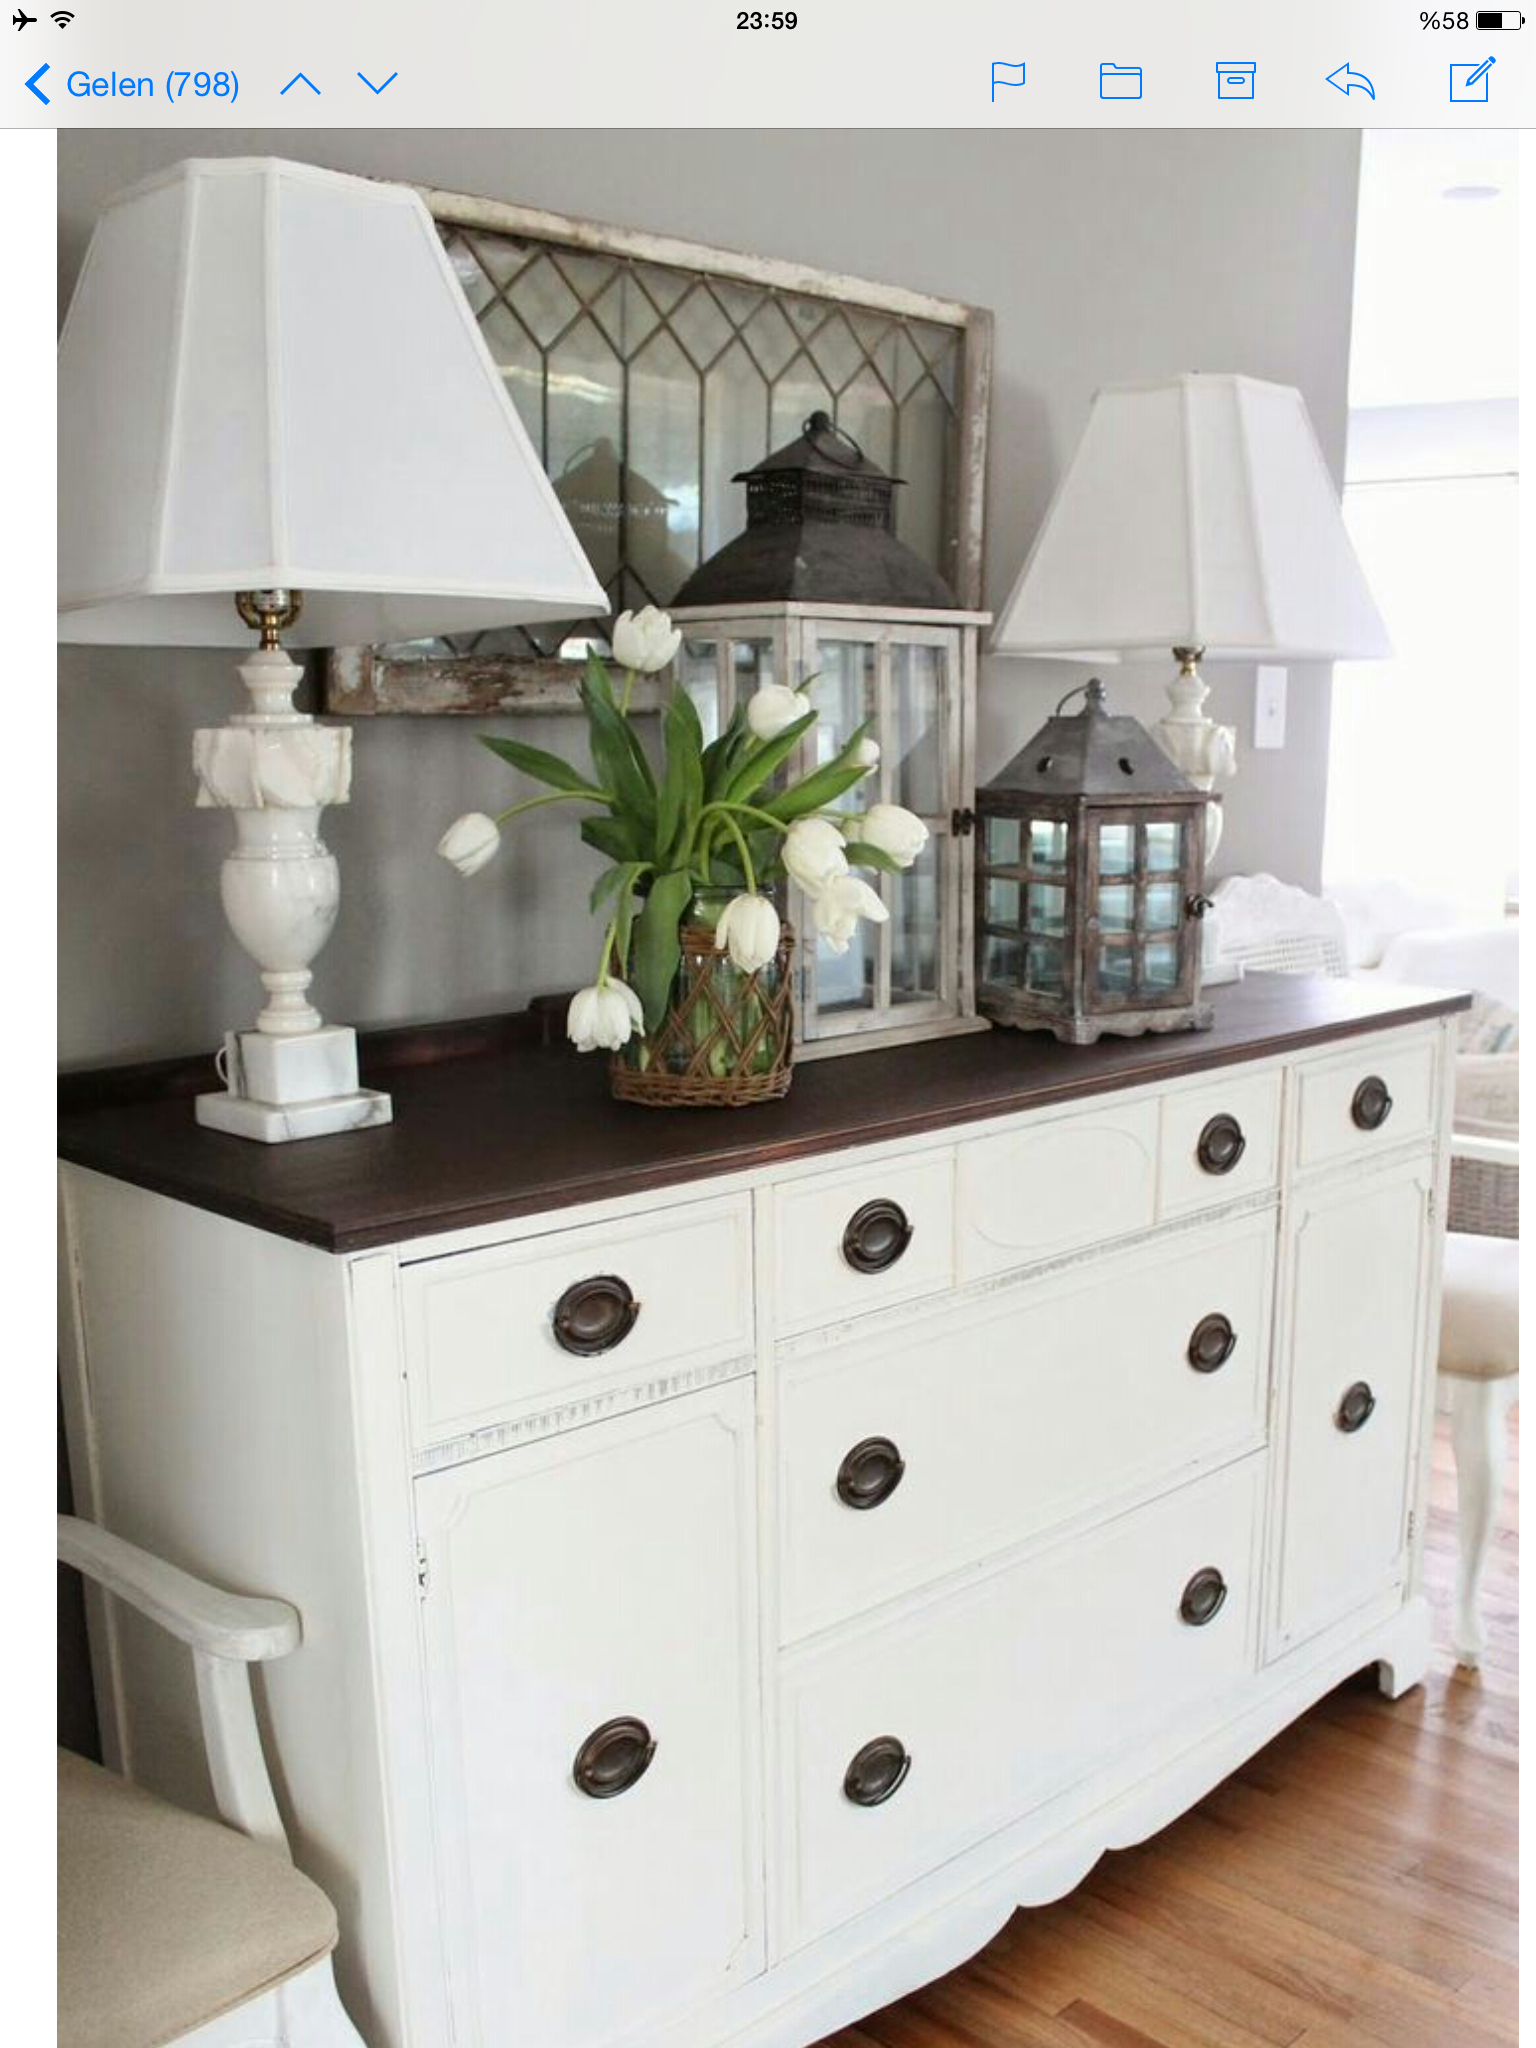 Find used dresser& chest of drawers, paint body& drawers white, java gel stain on top Table